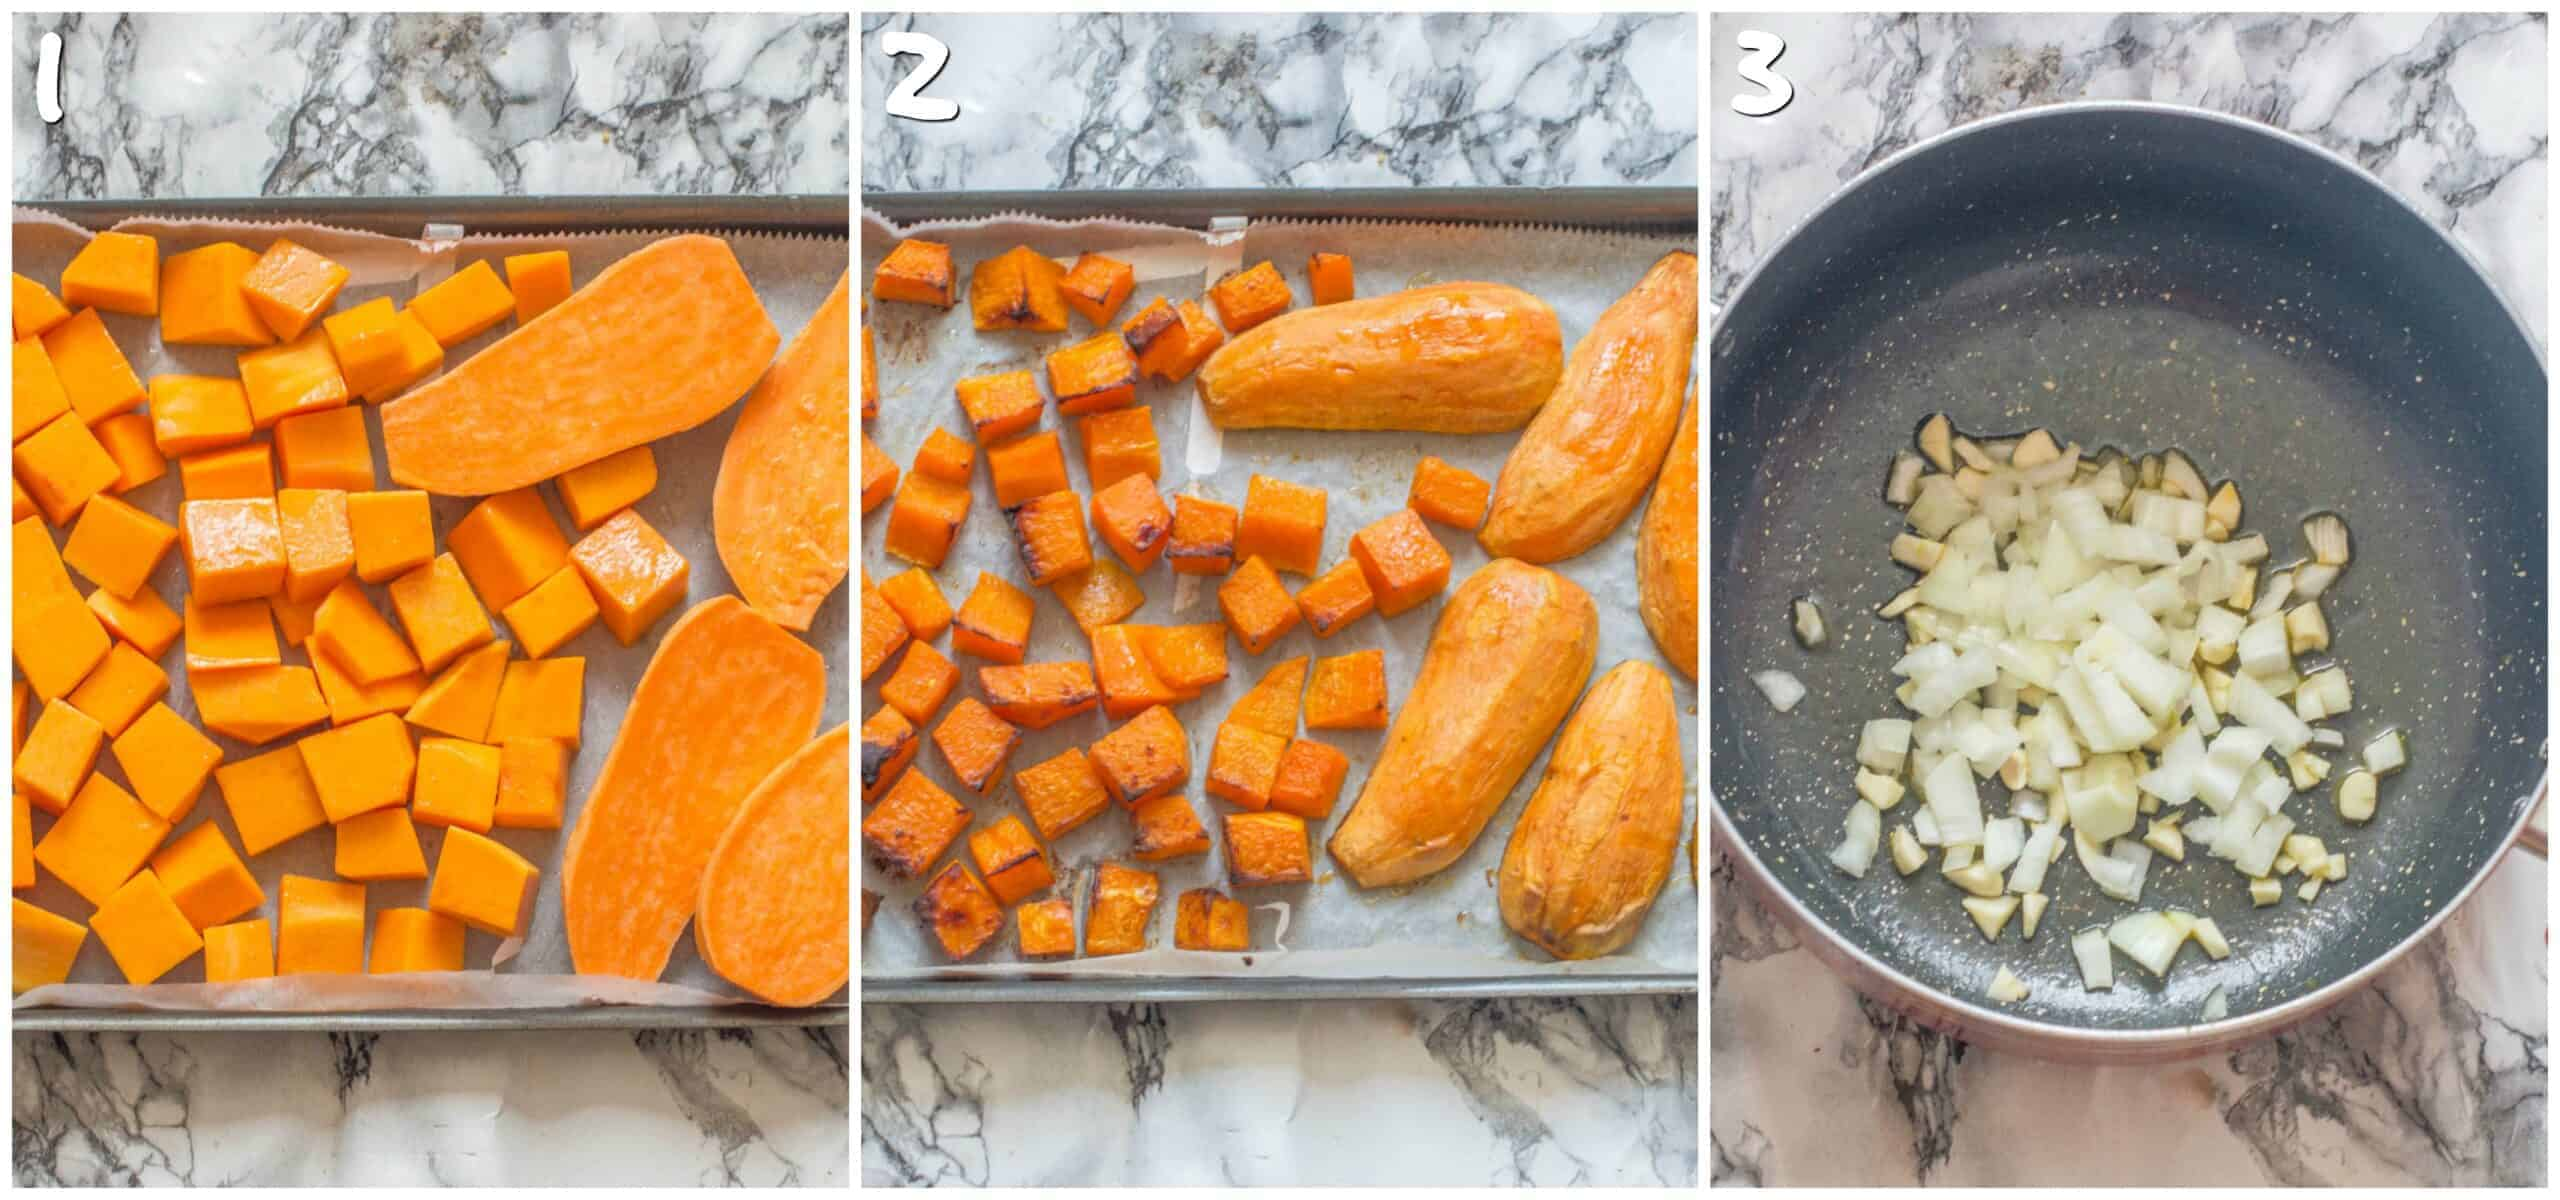 steps 1-3 roasting the pumpkin and sauteing